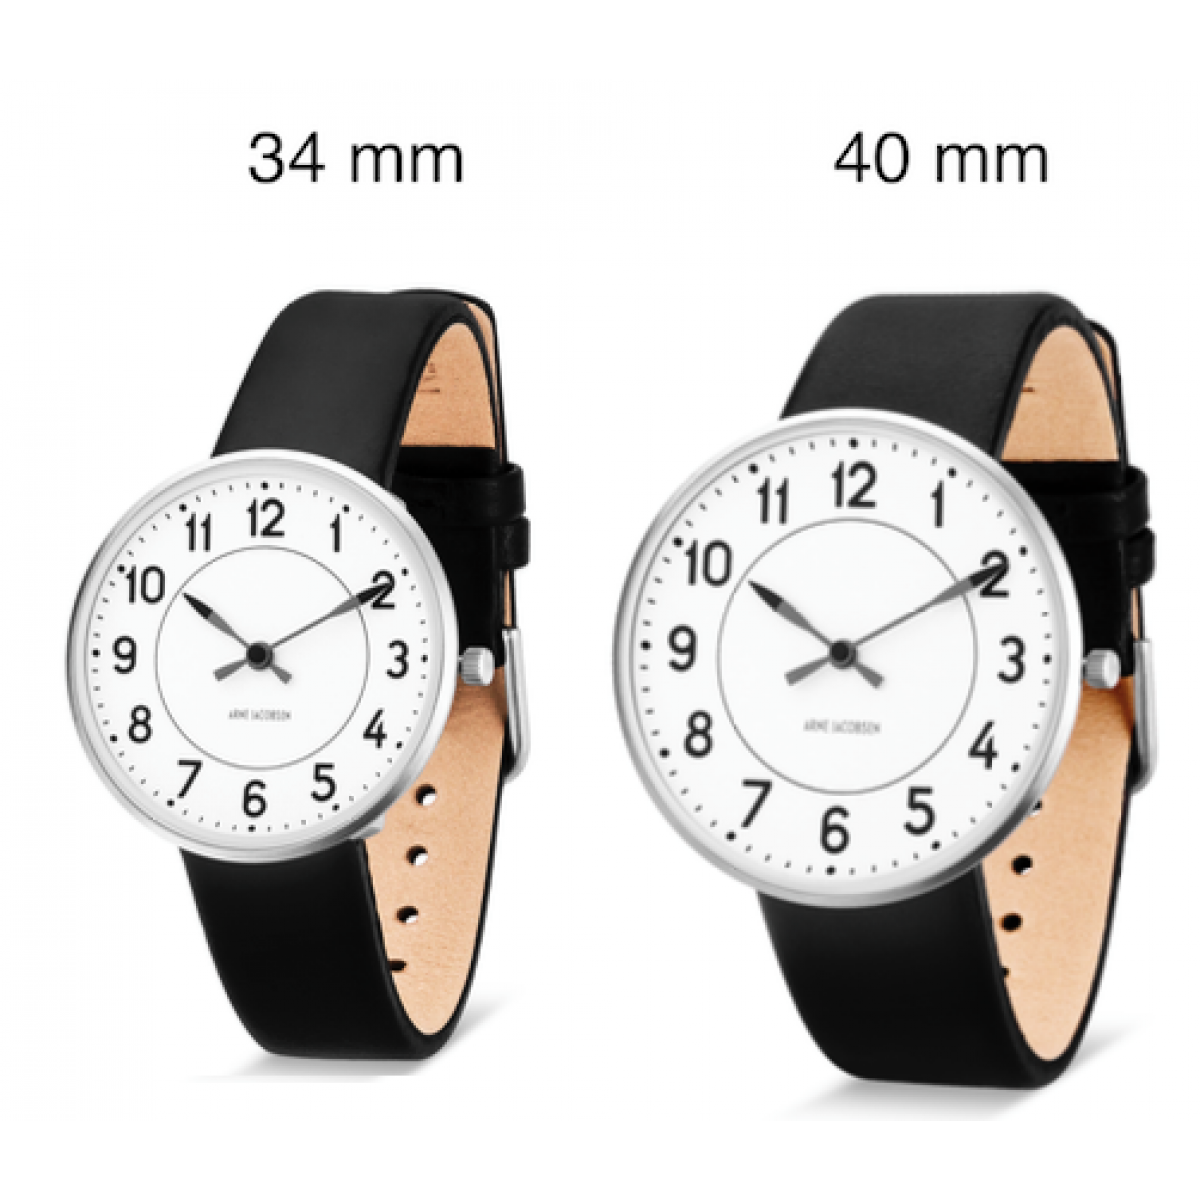 Arne Jacobsen armbåndsur STATION 34 and 40 MM sort rem-3